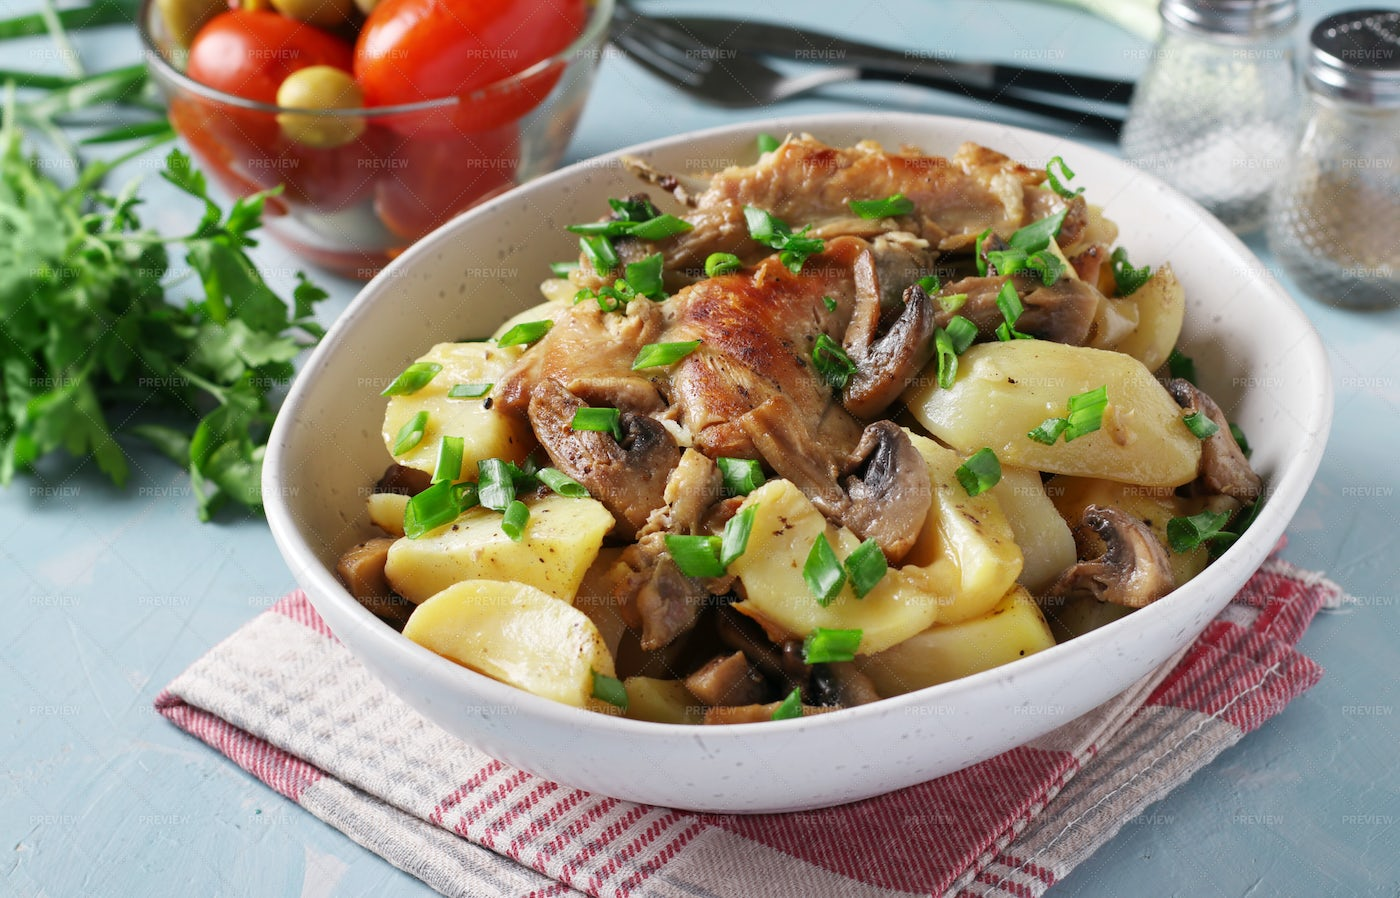 Rabbit Meat With Potatoes And Mushrooms: Stock Photos